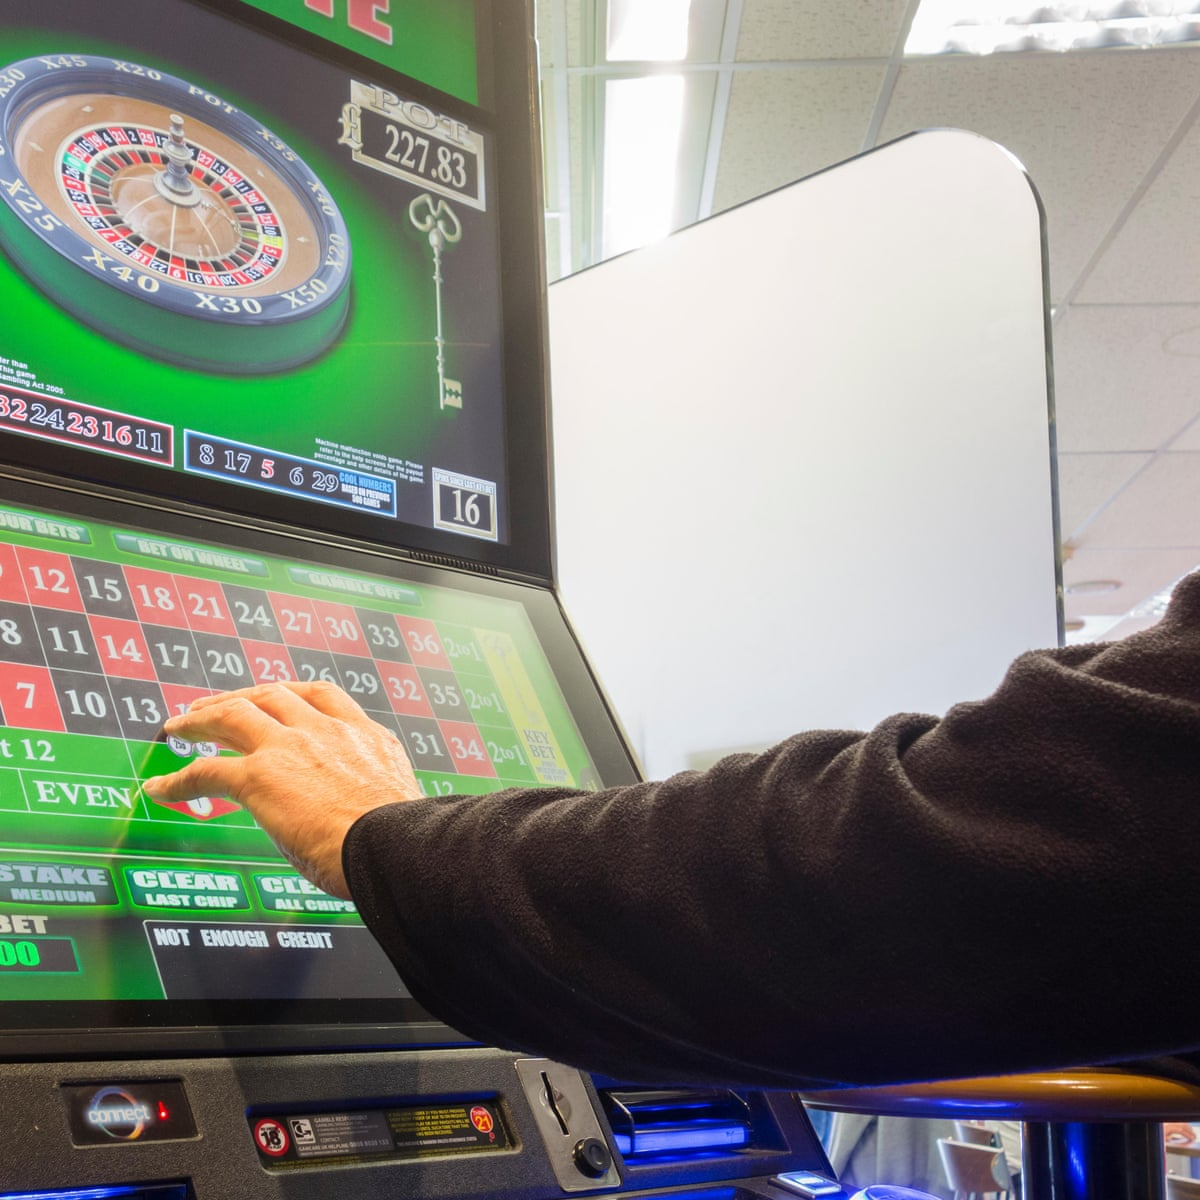 Number of problem gamblers in the UK rises to more than 400,000 | Society |  The Guardian